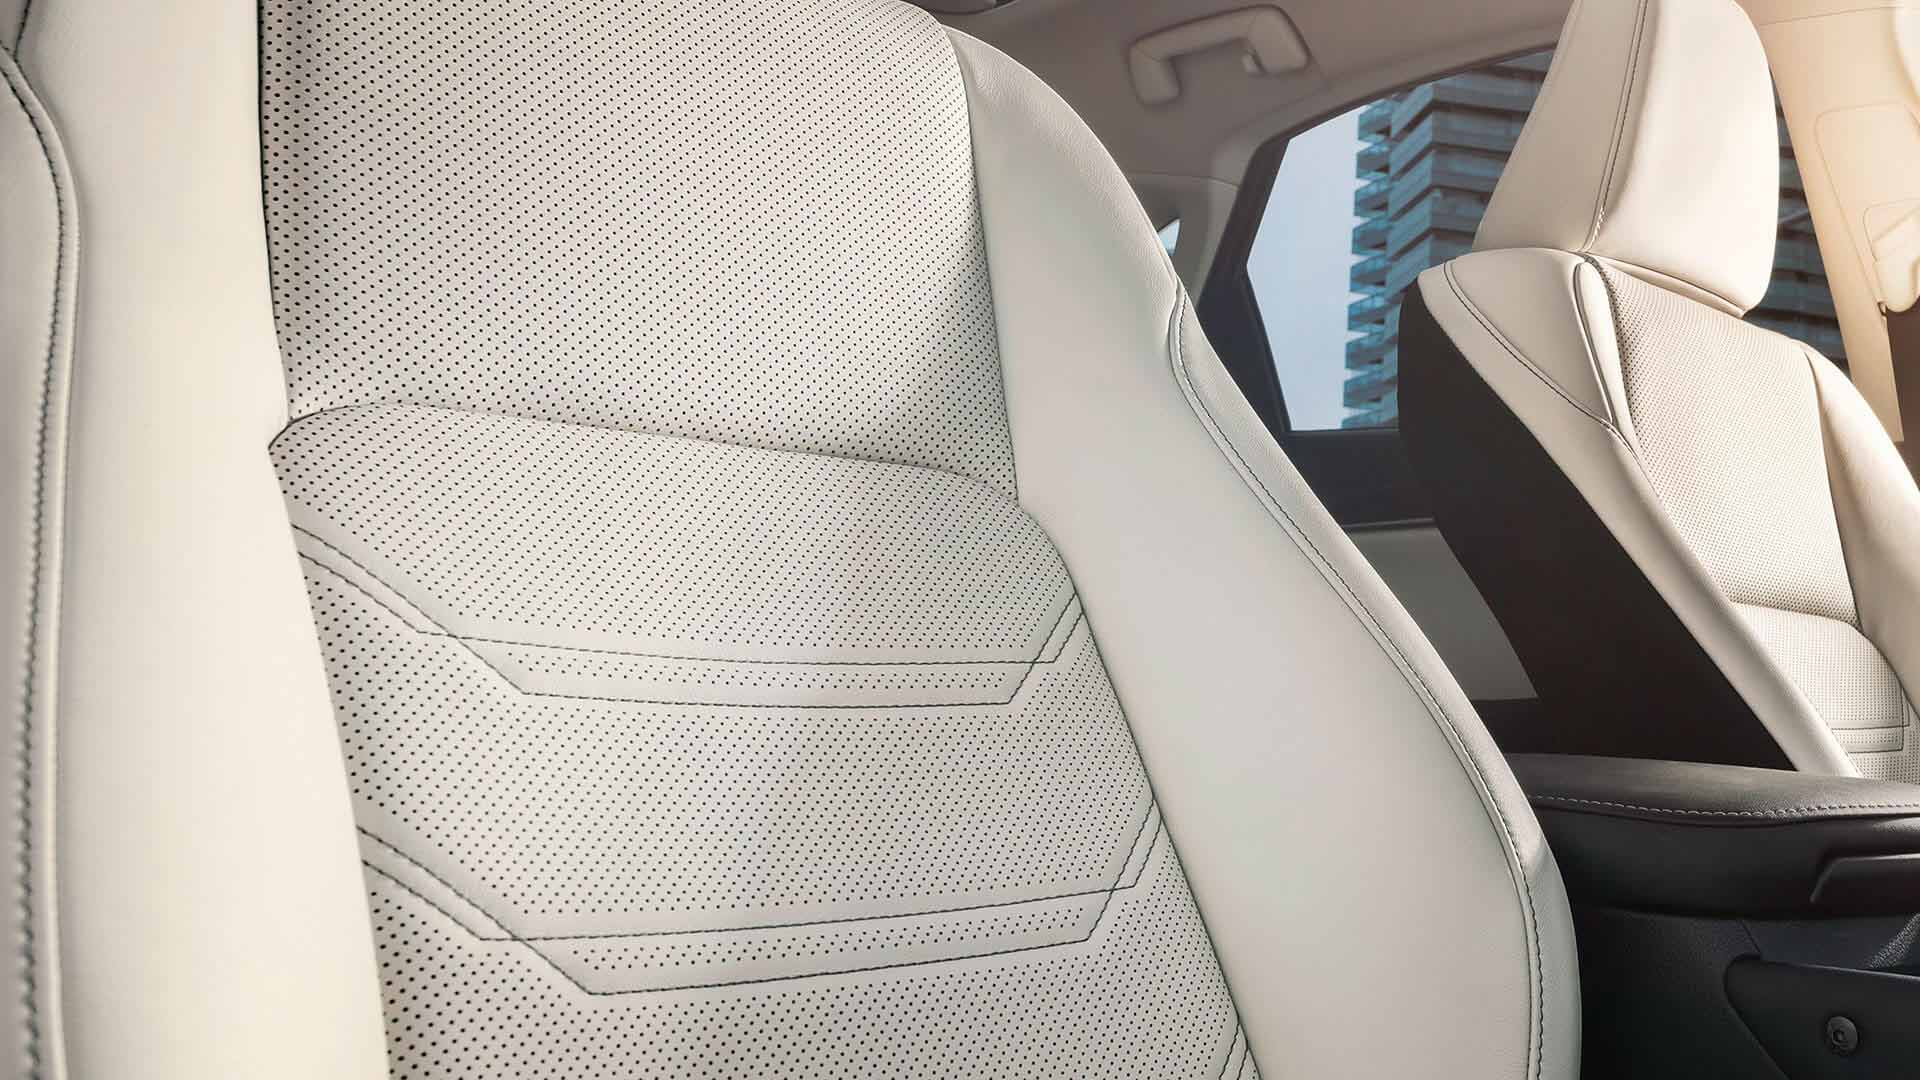 2018 lexus nx my18 features heated seats